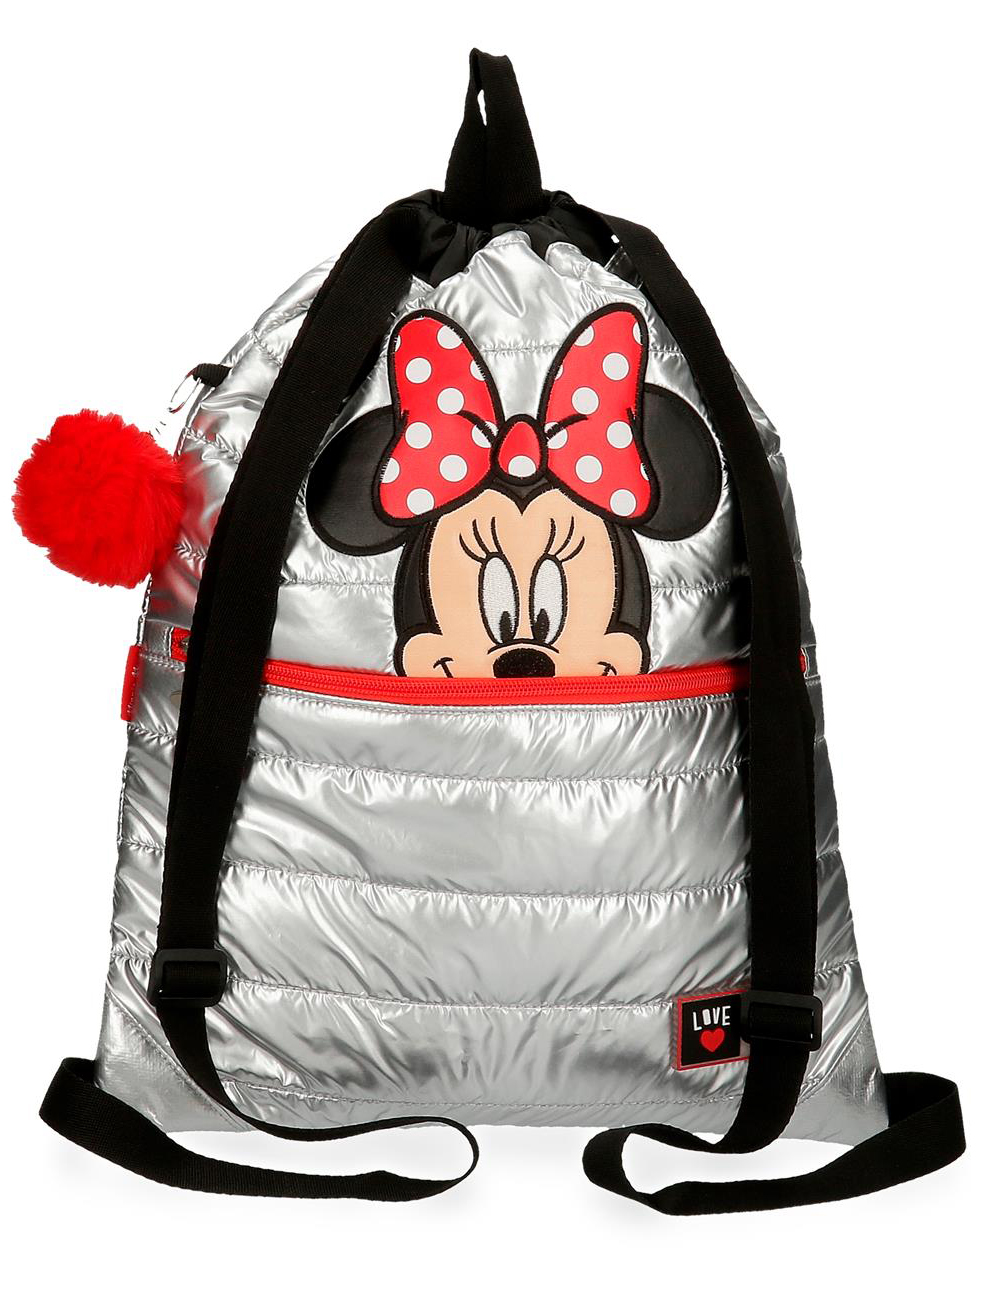 2163821 Gym Sac con Cremallera Minnie My Pretty Bow